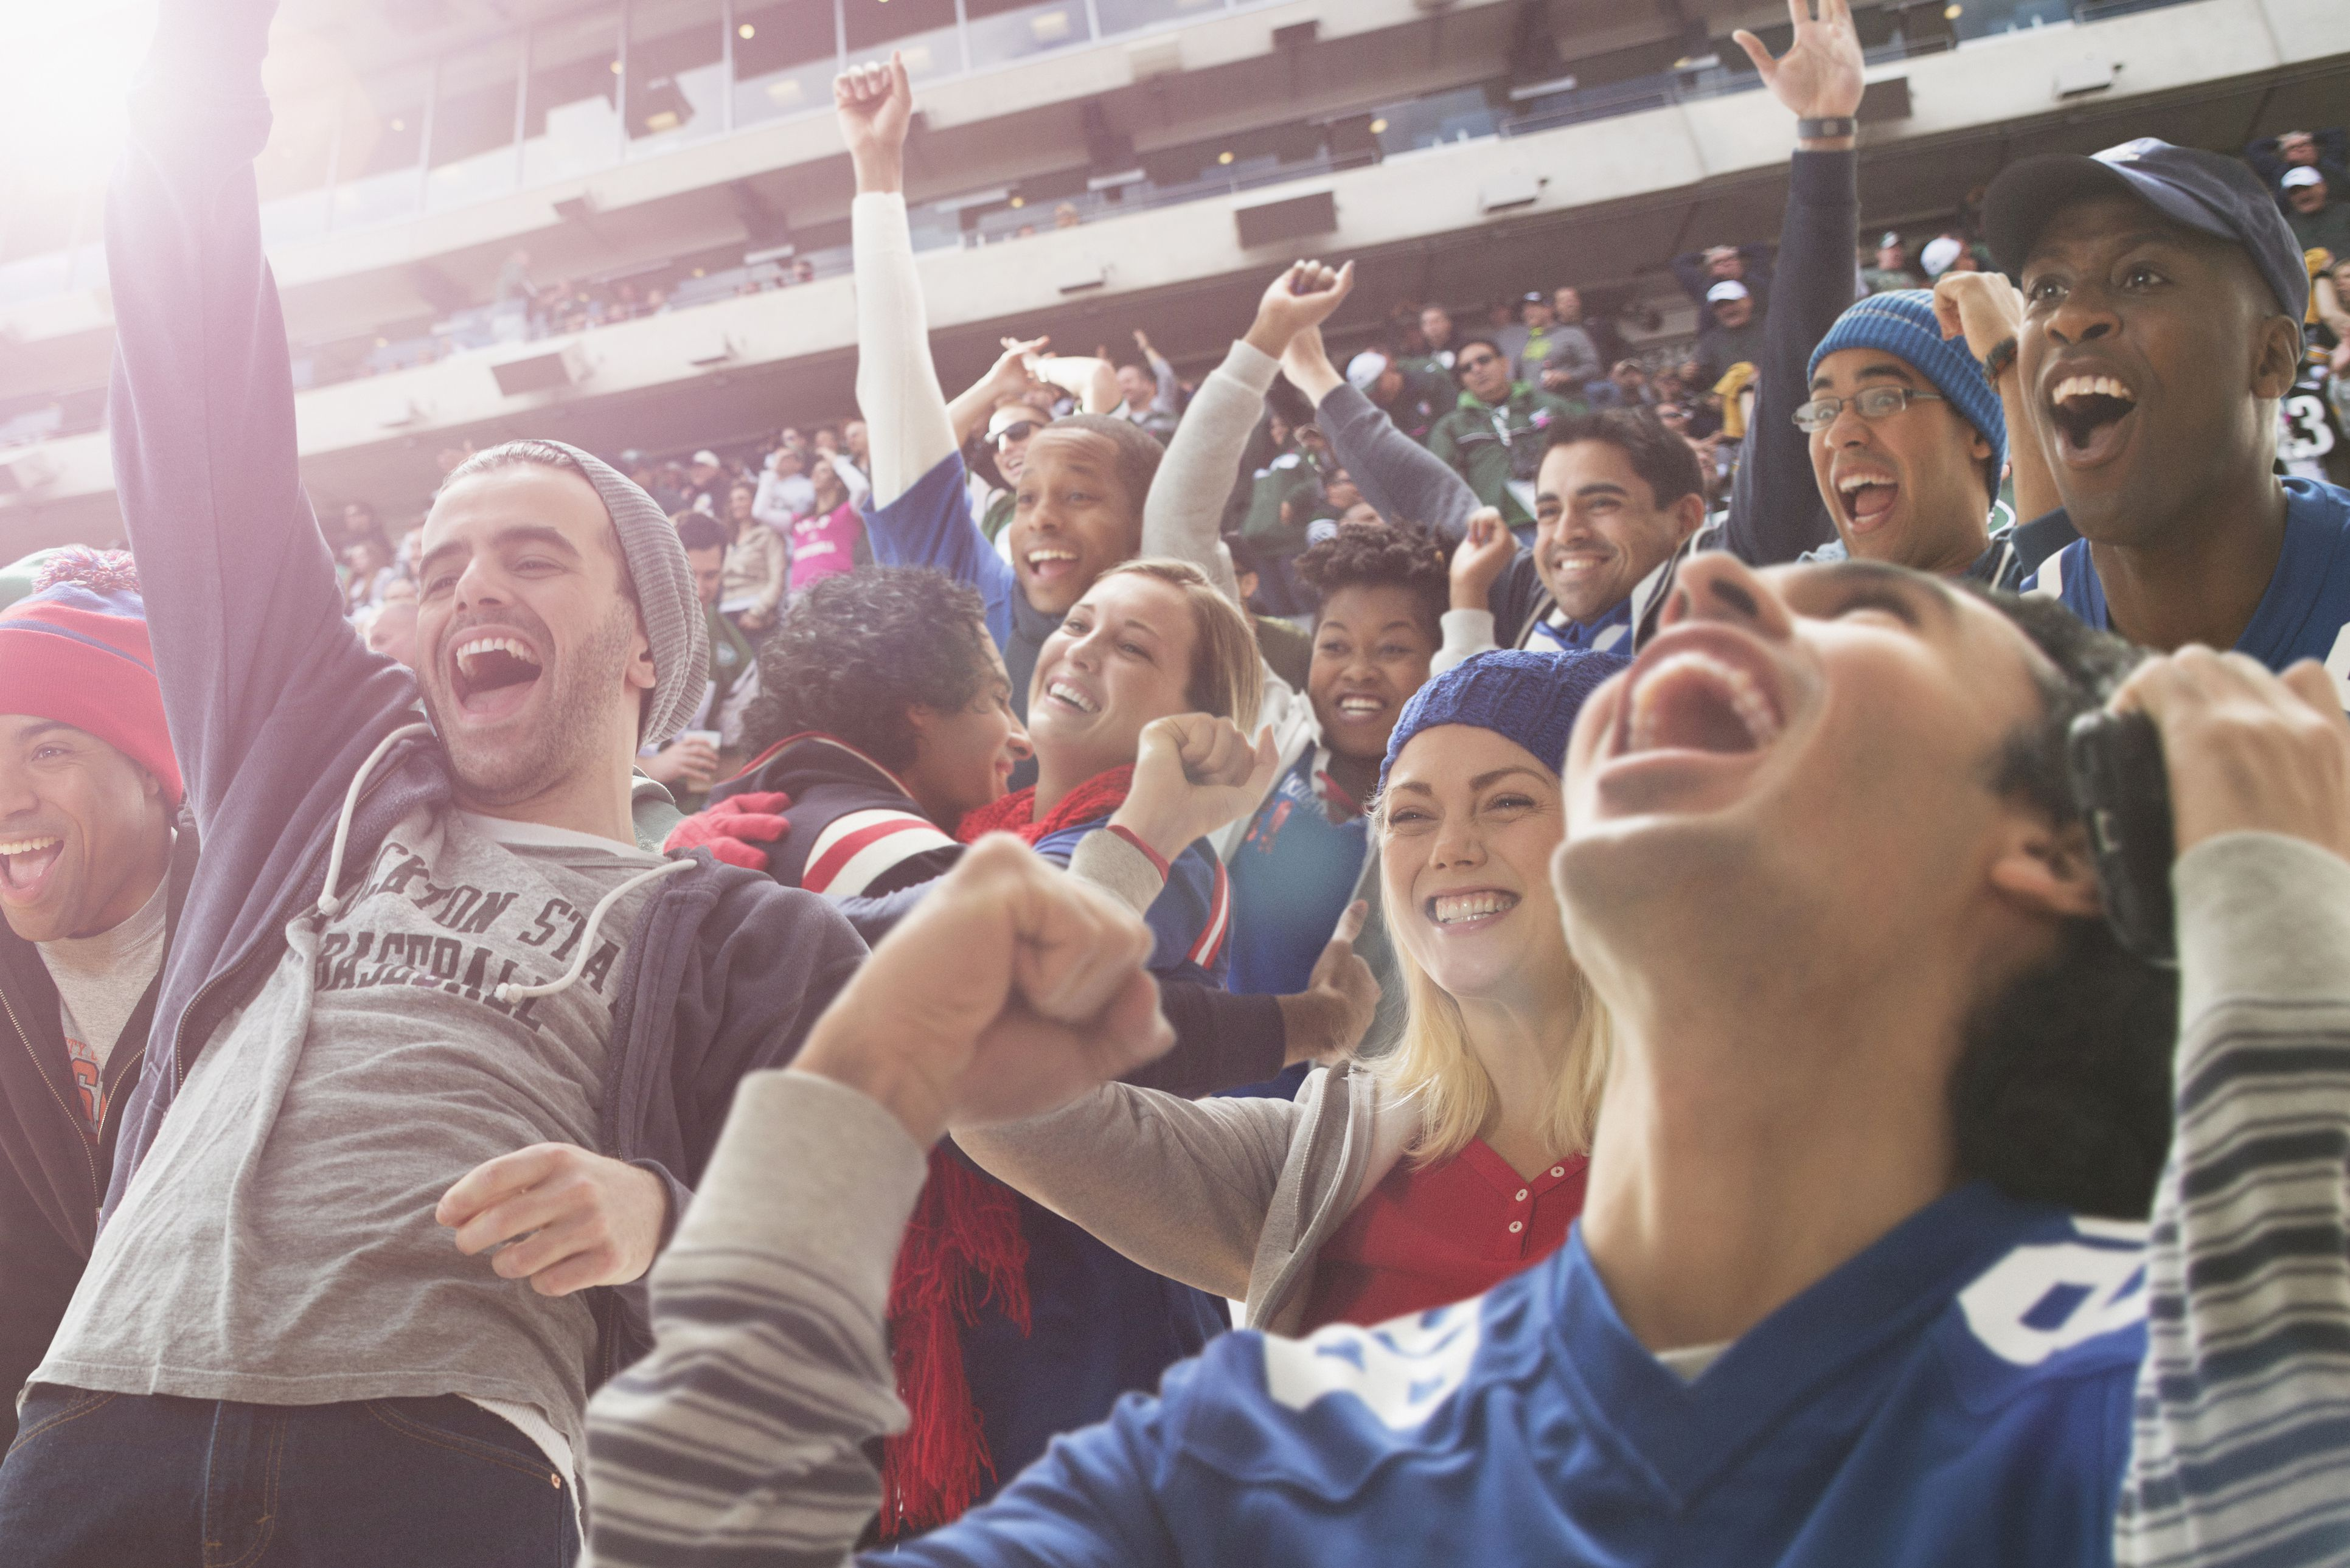 fans football game cheering american sports getty sociology society between relationship sporting strip